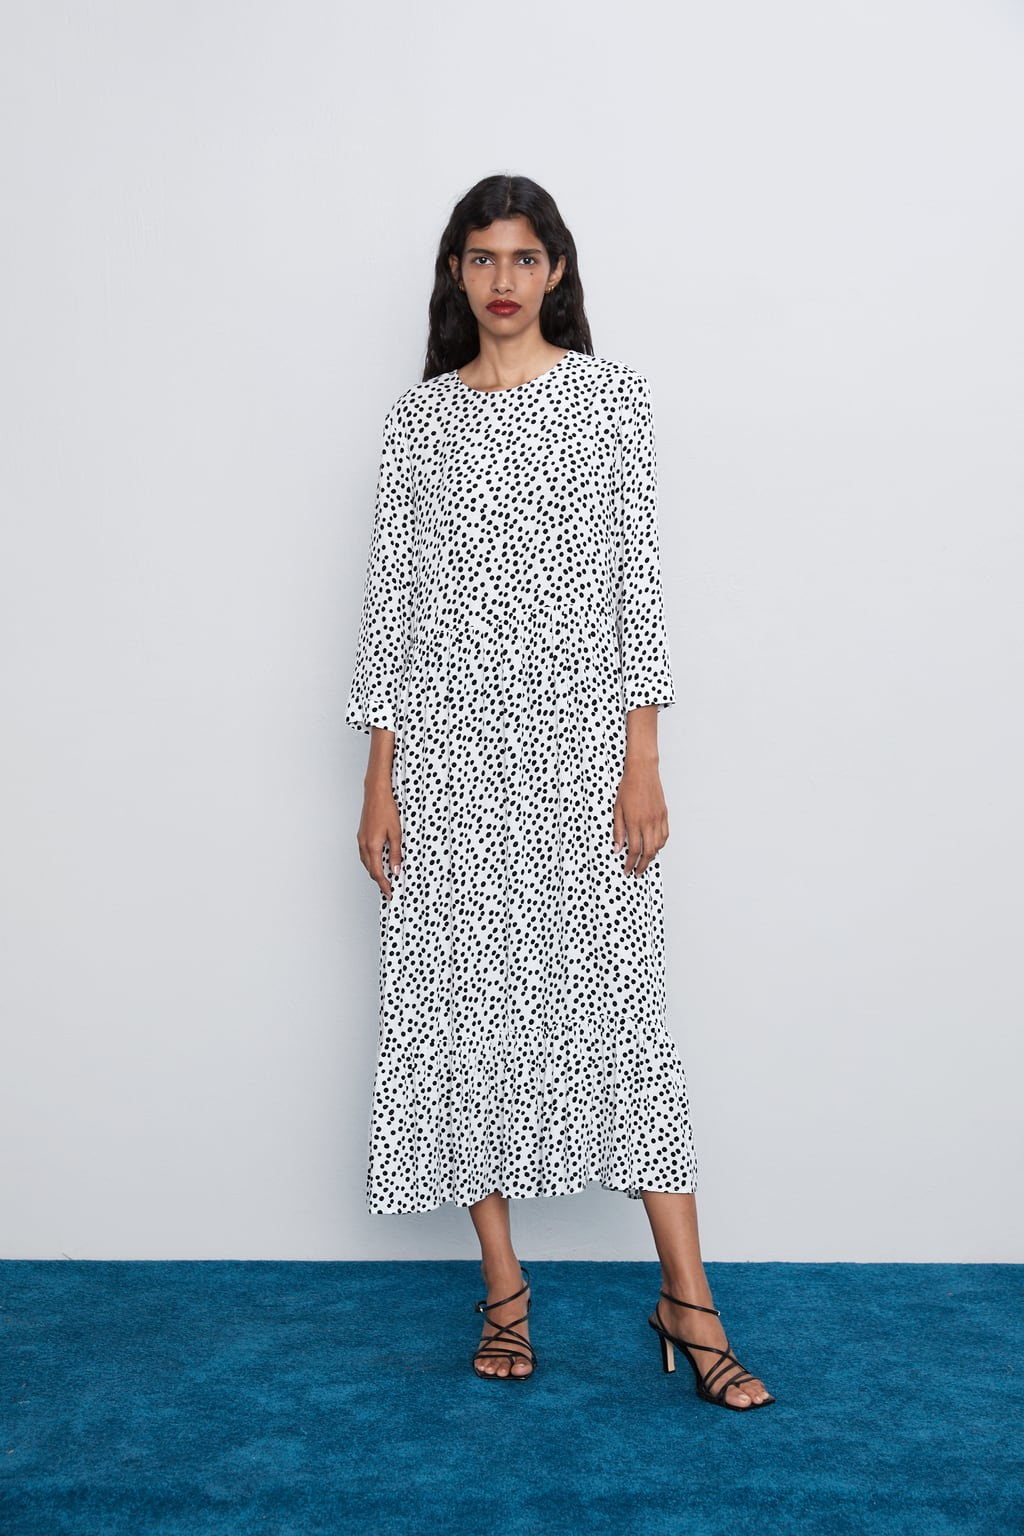 tendenze moda polka dot midi dress Zara - Shoppics.com